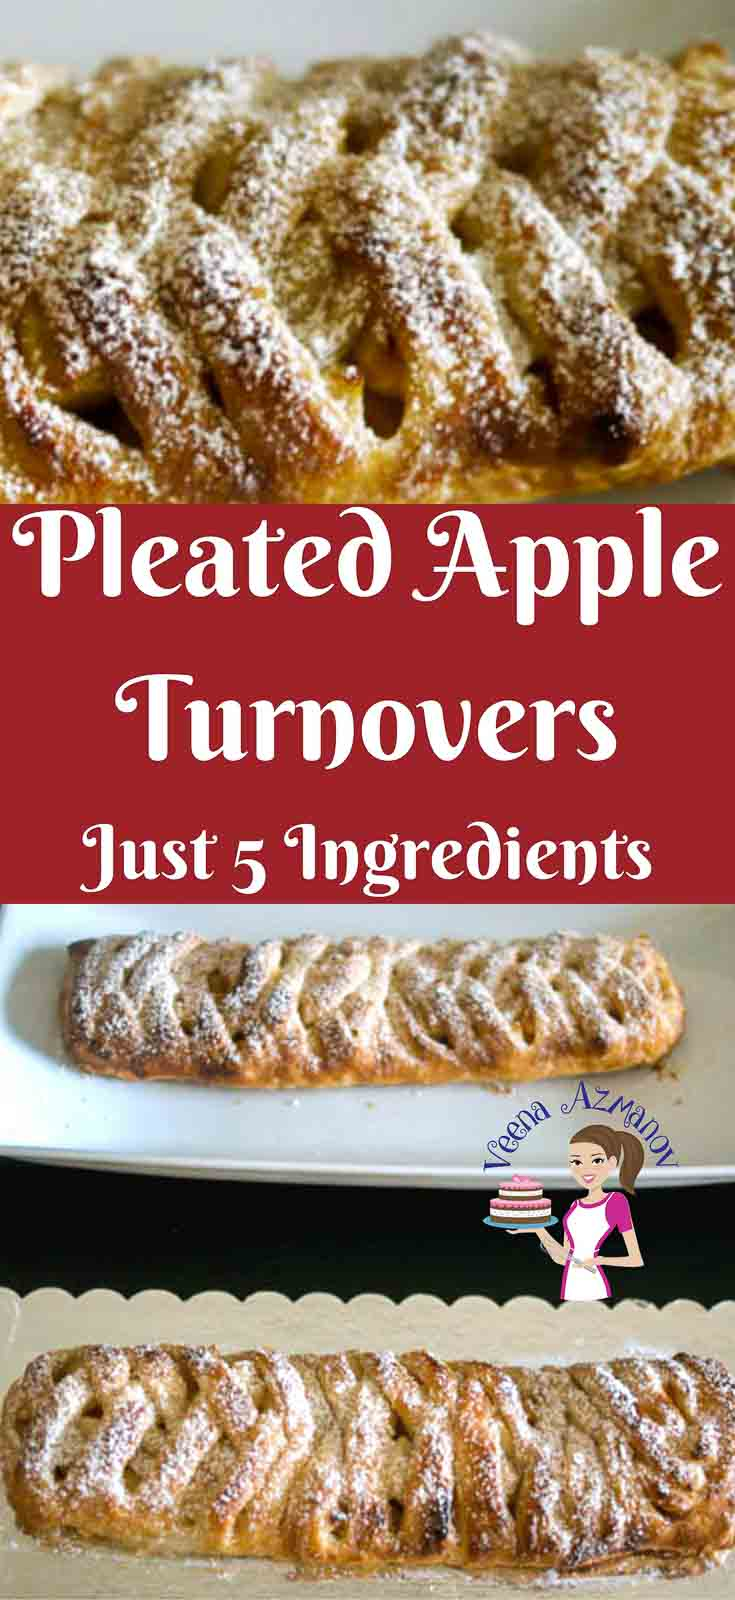 Pinterest image - A fancy Apple Turnover is a simple easy and effortless way to impress your family and friends with an impressive pleated design leaving them wondering how you did it. It's looks complicated but is really simple and I show you how in this step by step details